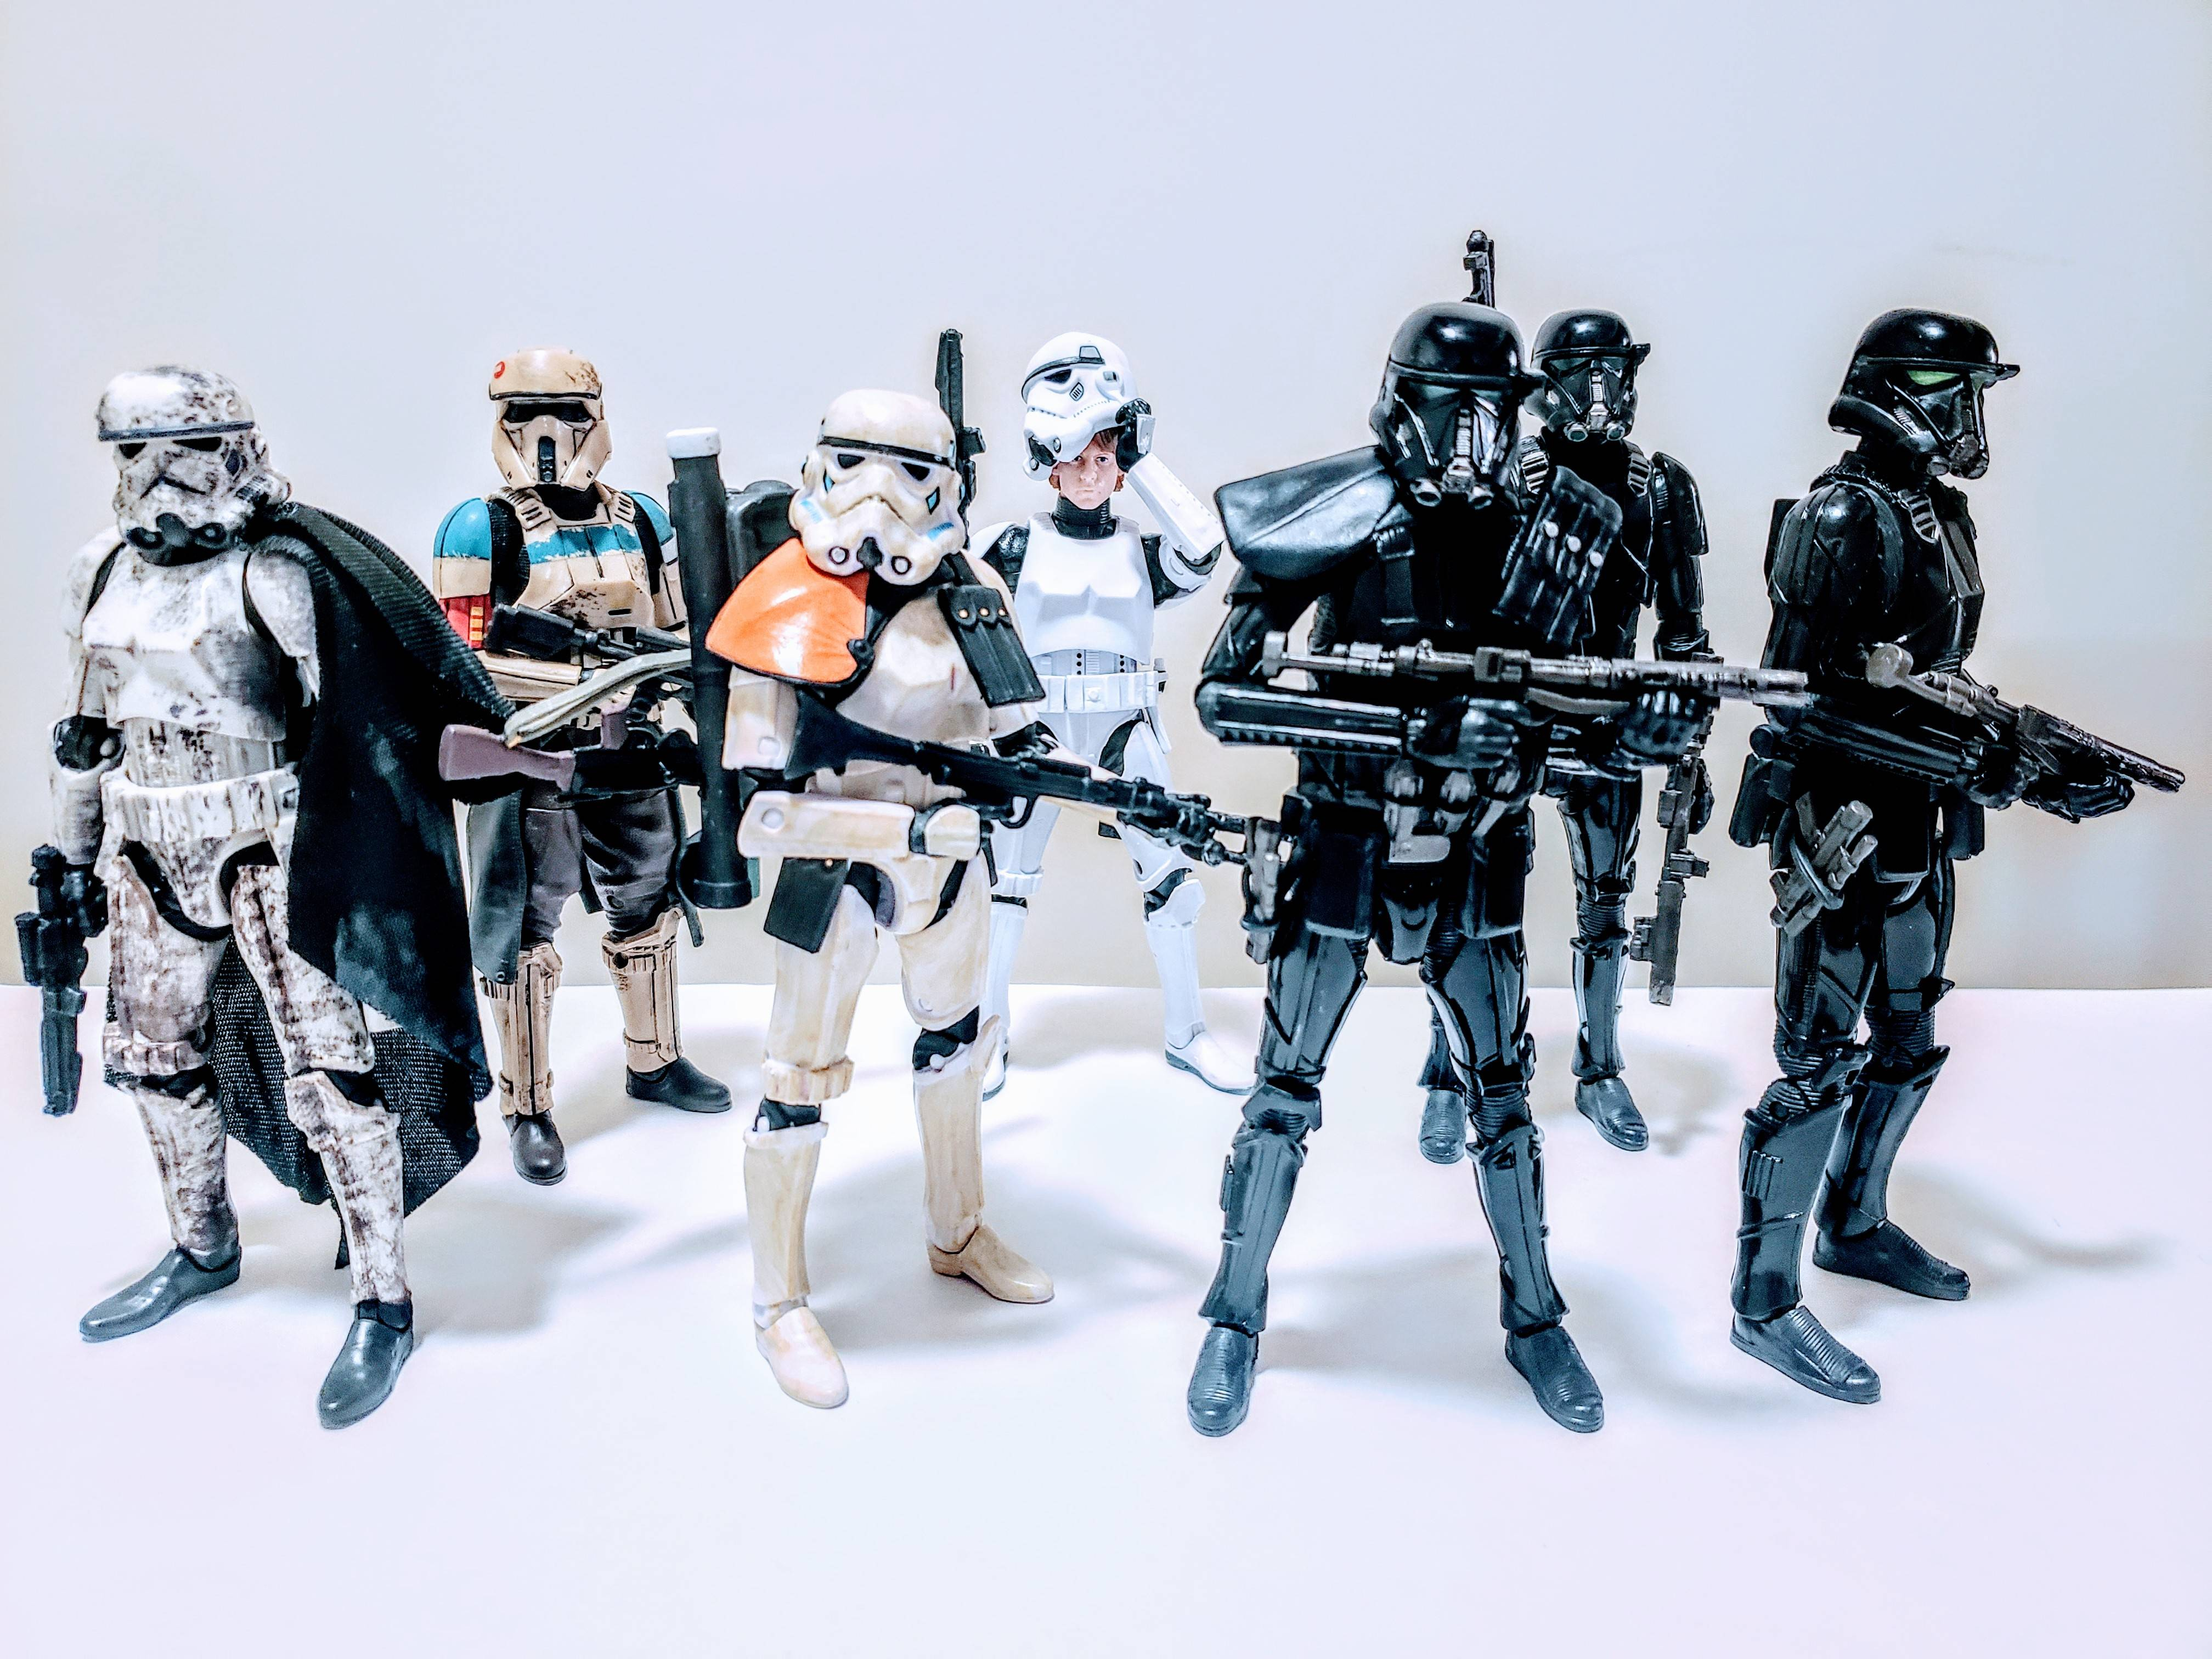 Unpacking and had to get a Trooper group shot. Need more Troops.